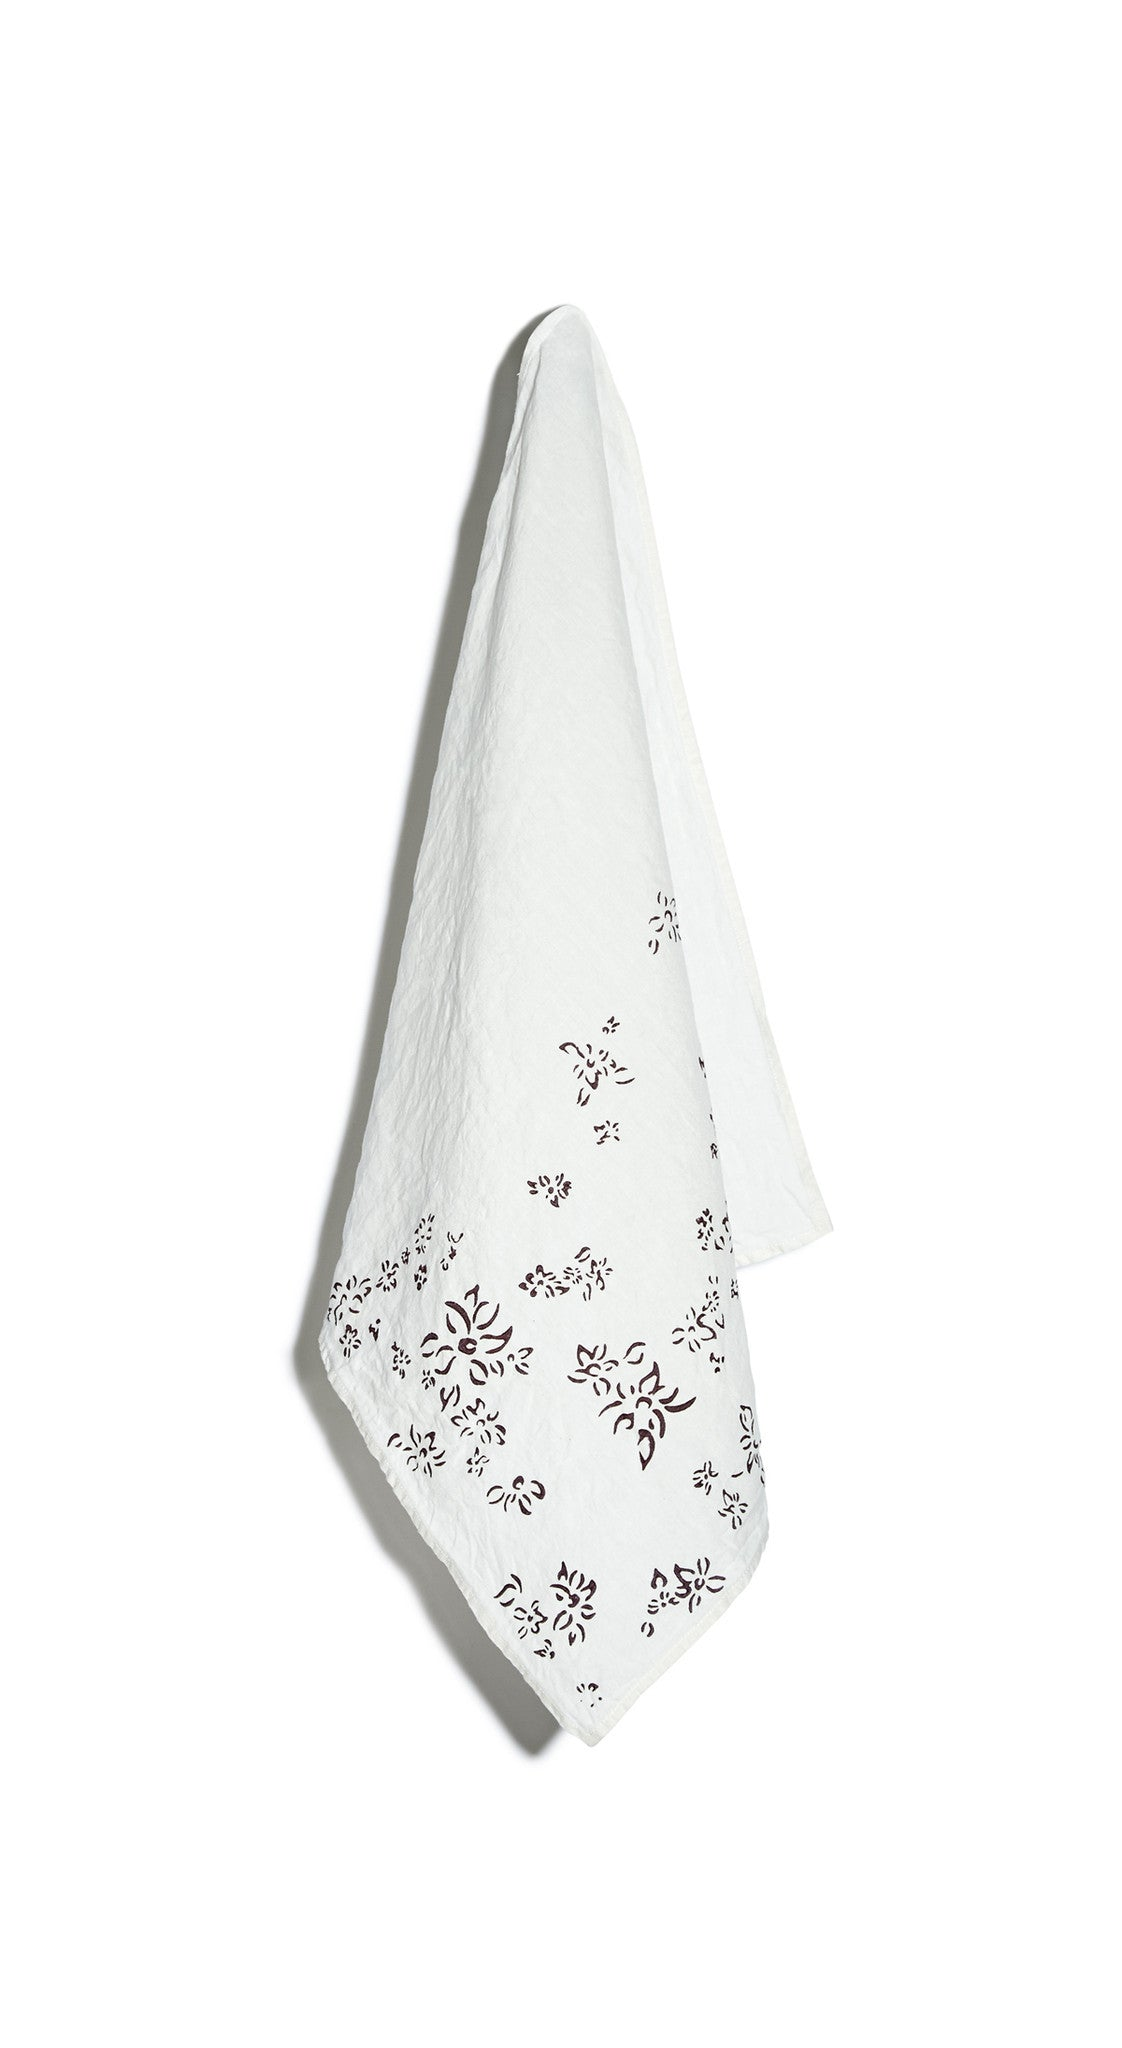 Bernadette's Falling Flower Linen Napkin in Grape Purple